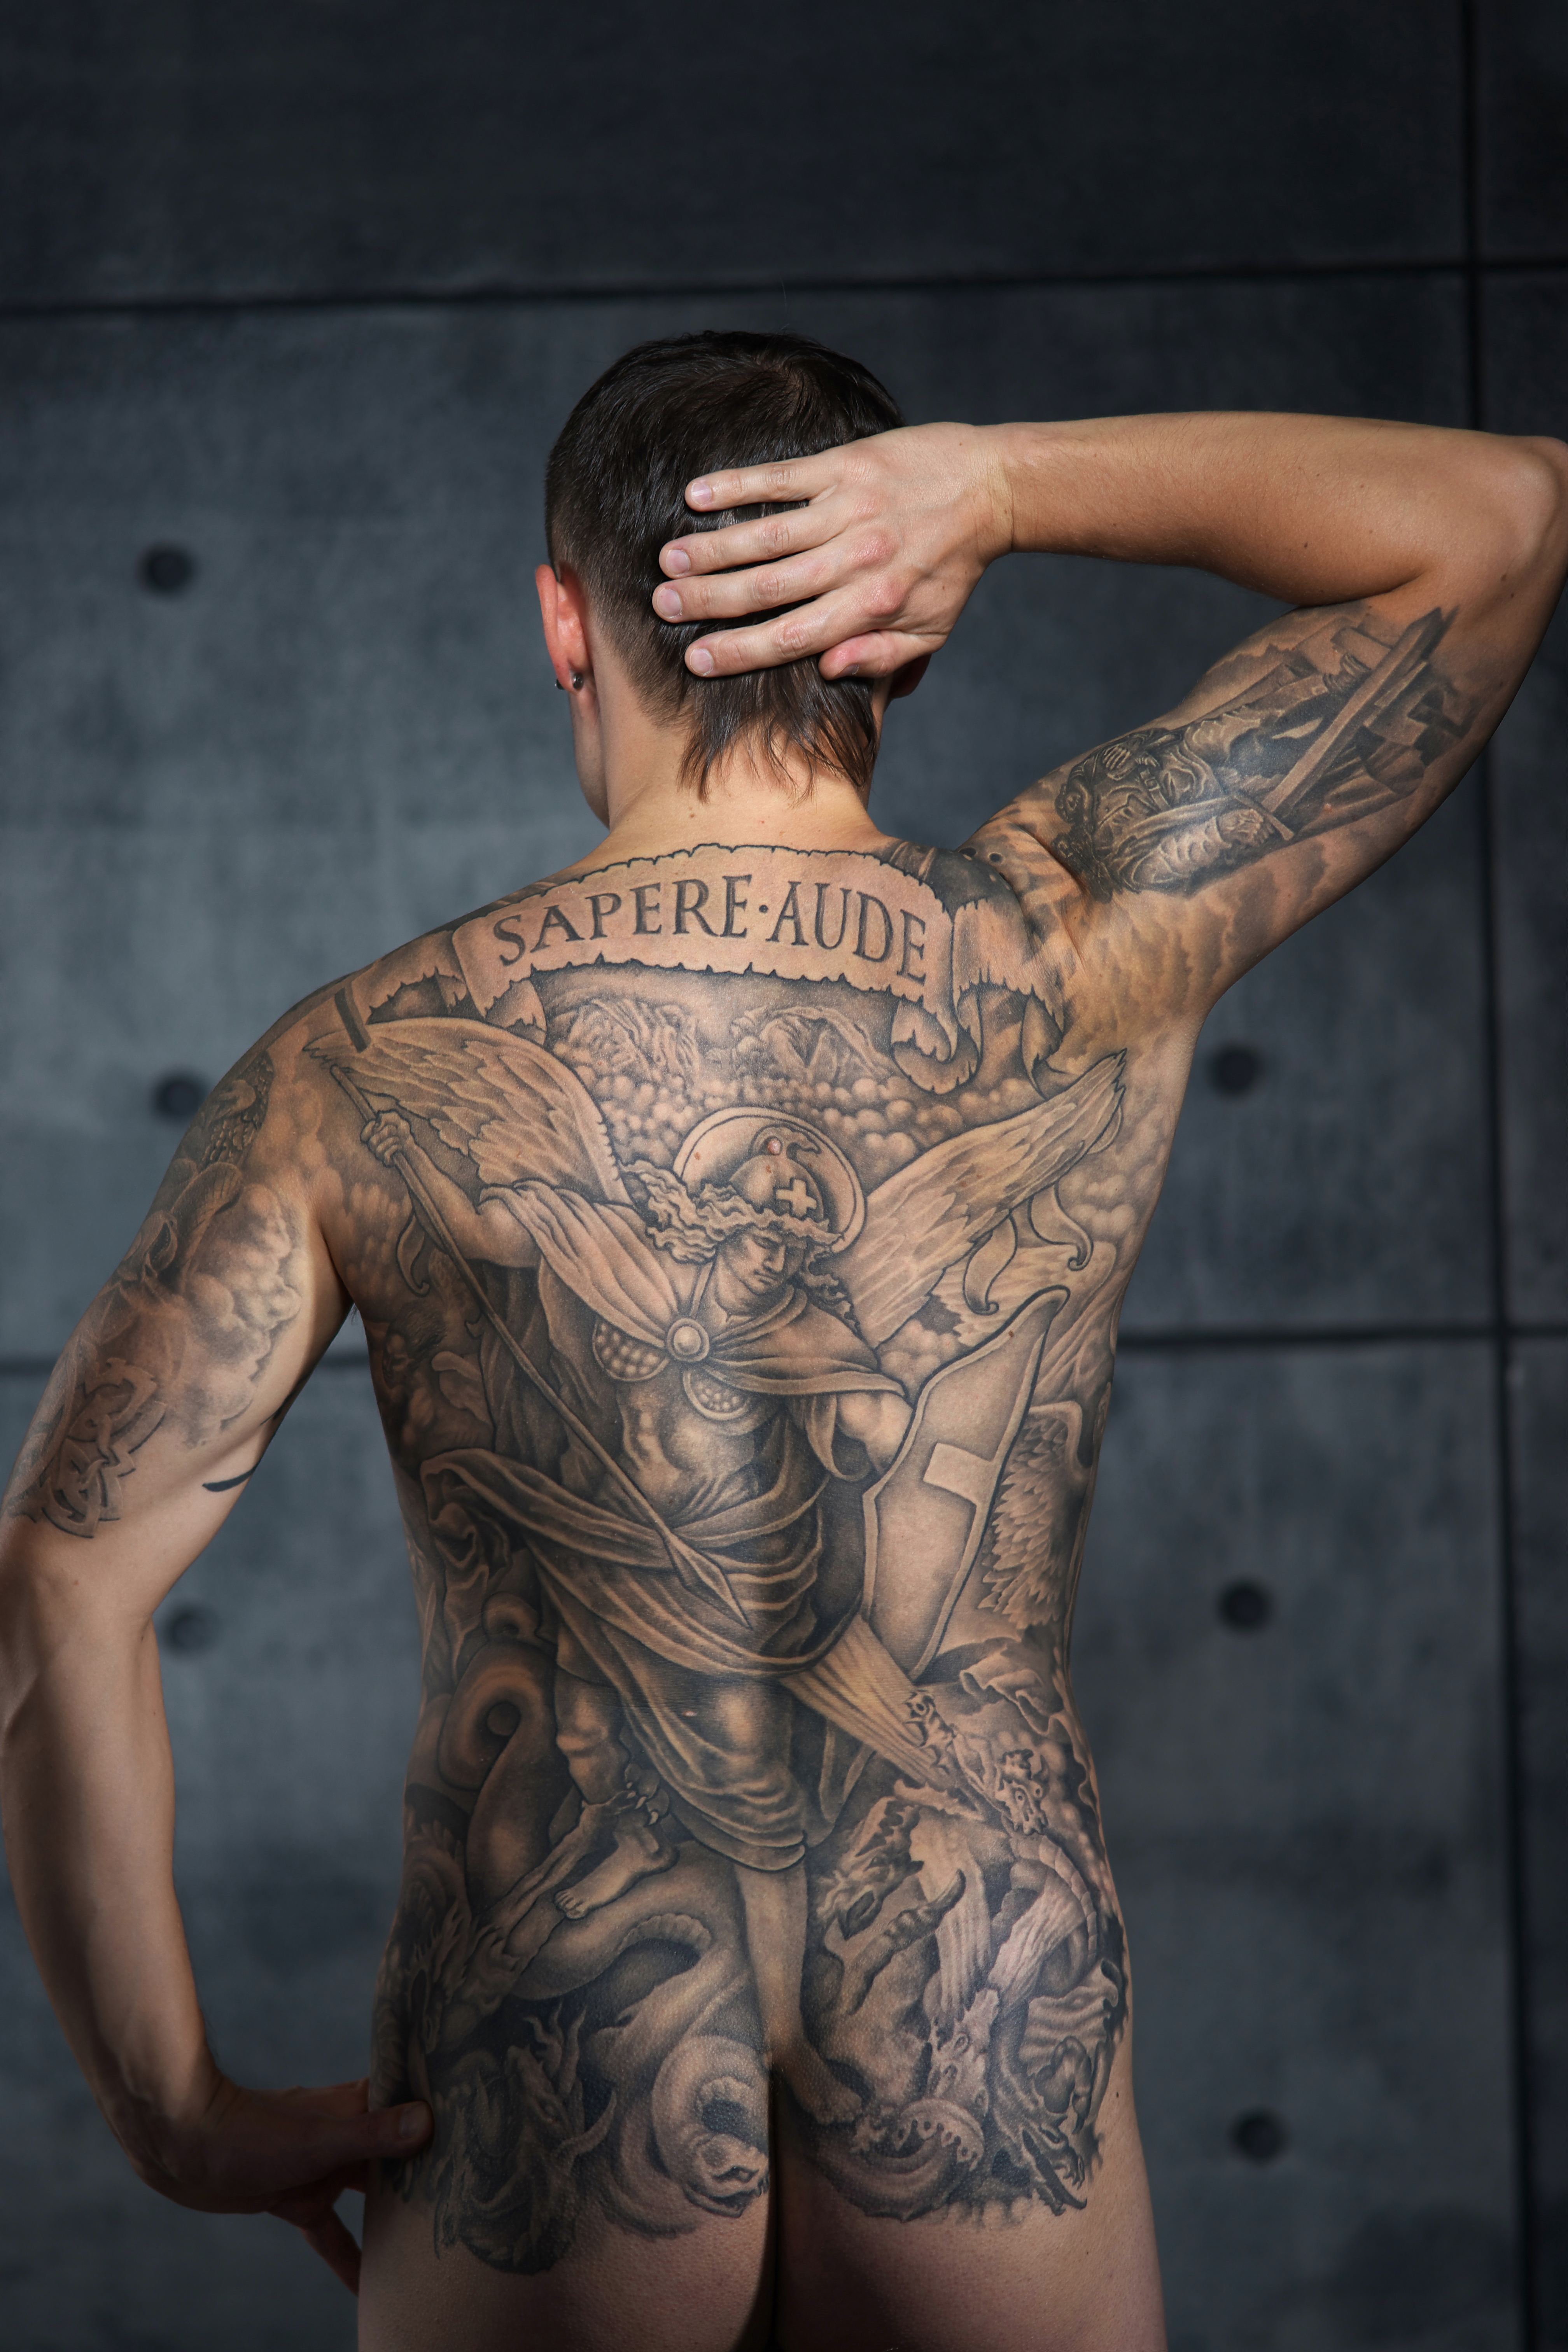 3deff61e0f66b File:Man with a full back tattoo. Color.jpg - Wikimedia Commons